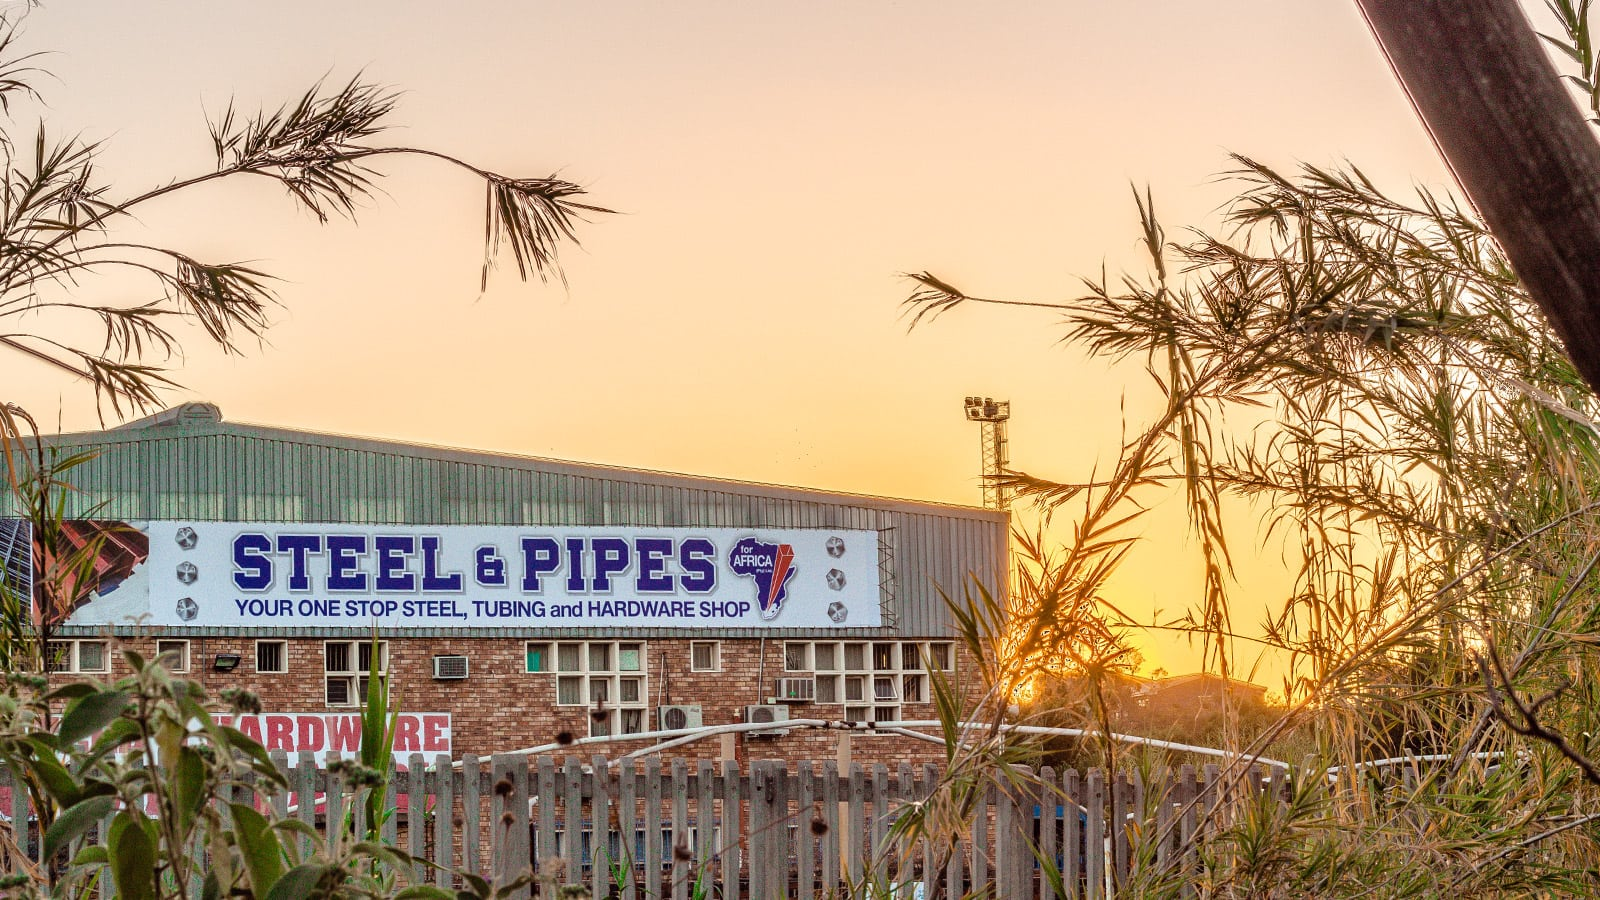 Steel and Pipes for Africa Signage